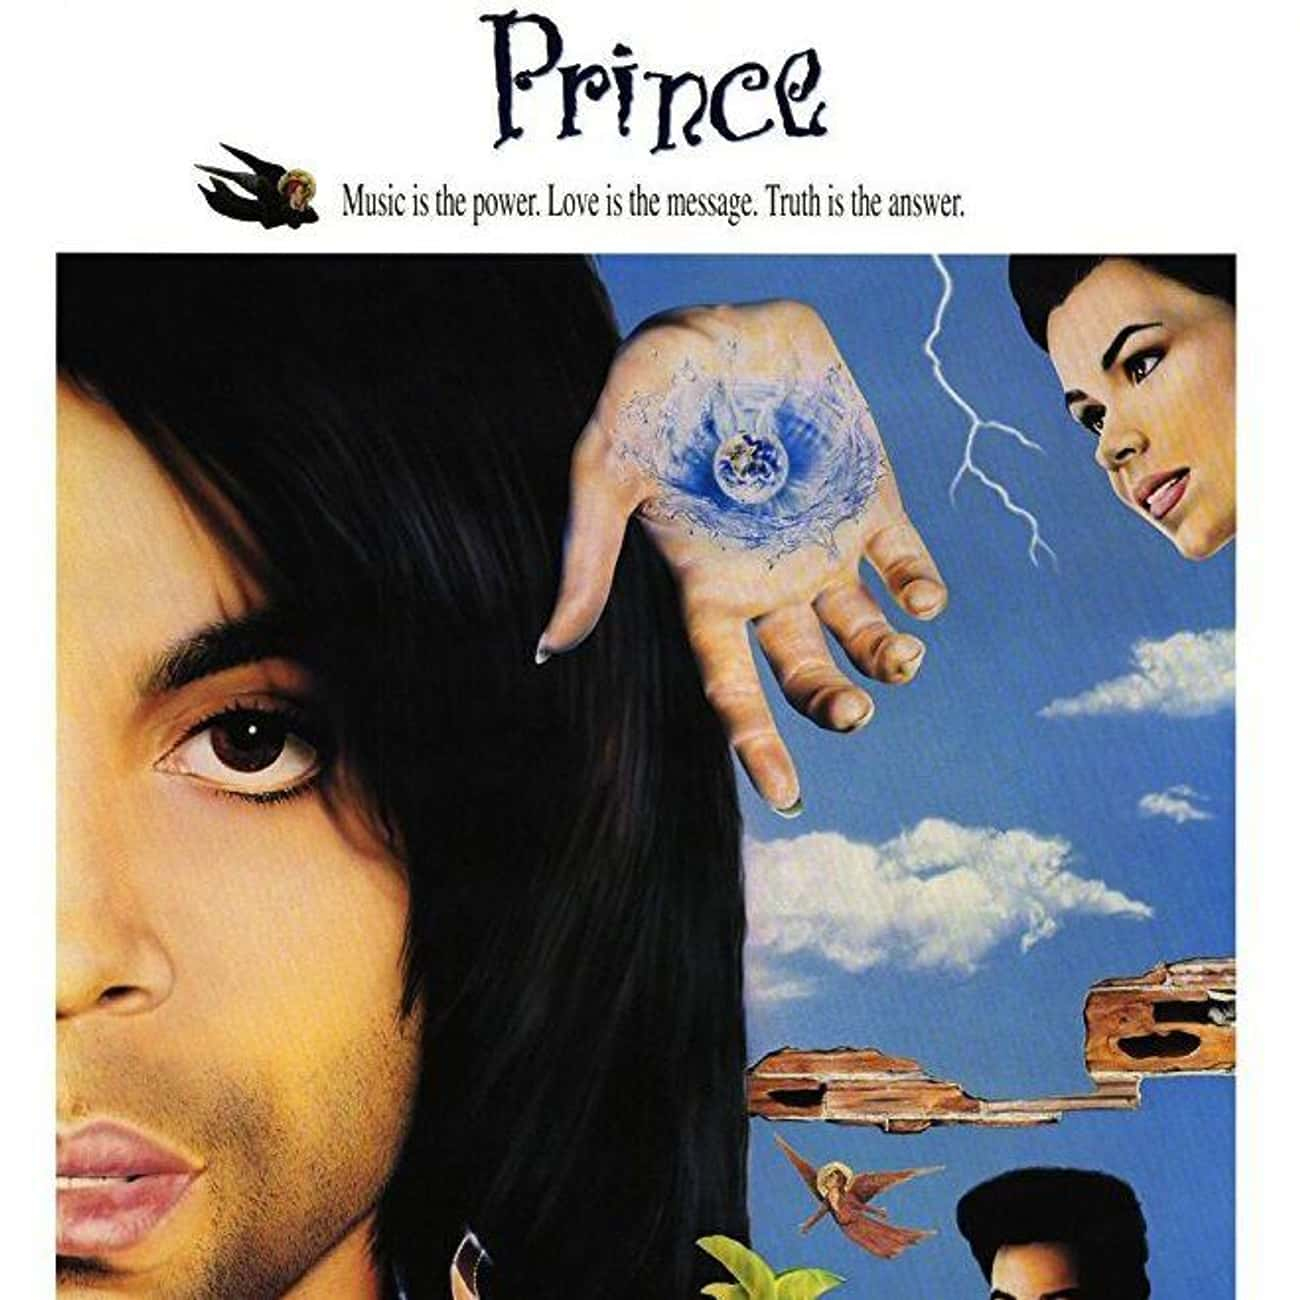 Graffiti Bridge is listed (or ranked) 3 on the list The Best Prince Movies